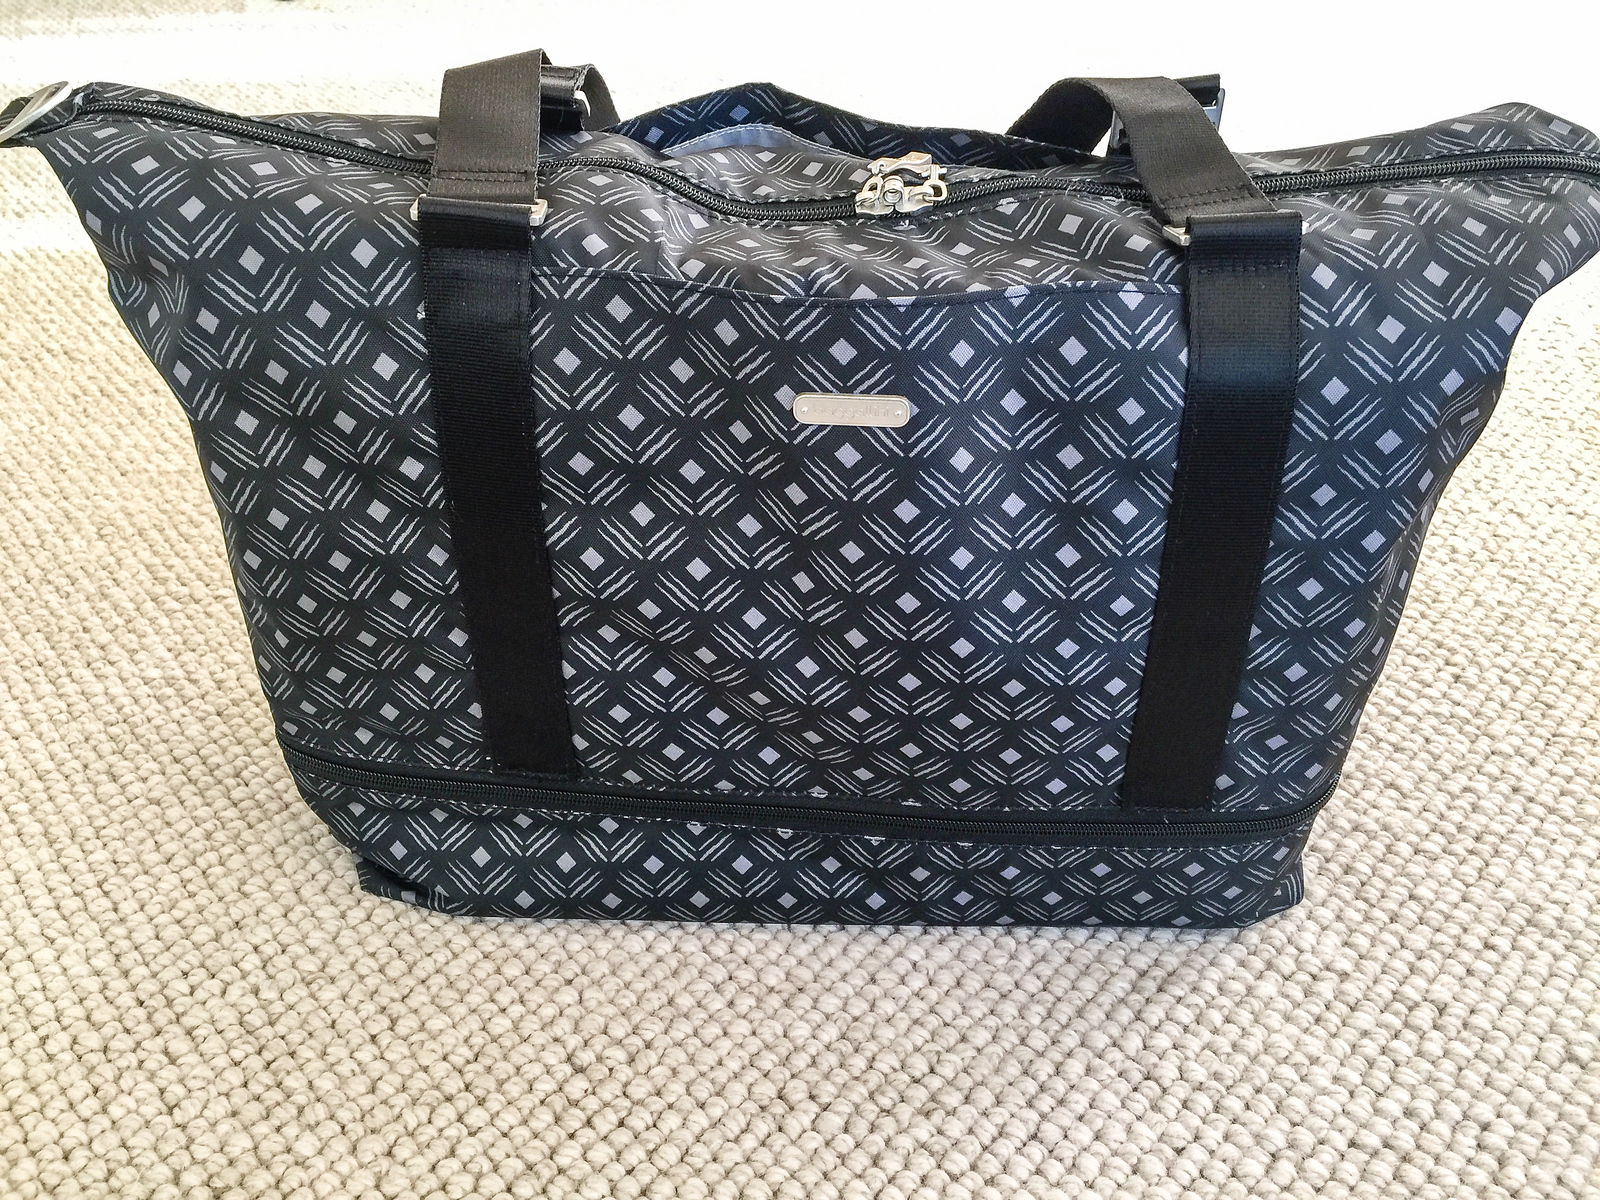 Black and white printed expandable carry on duffle bag packed for a trip.